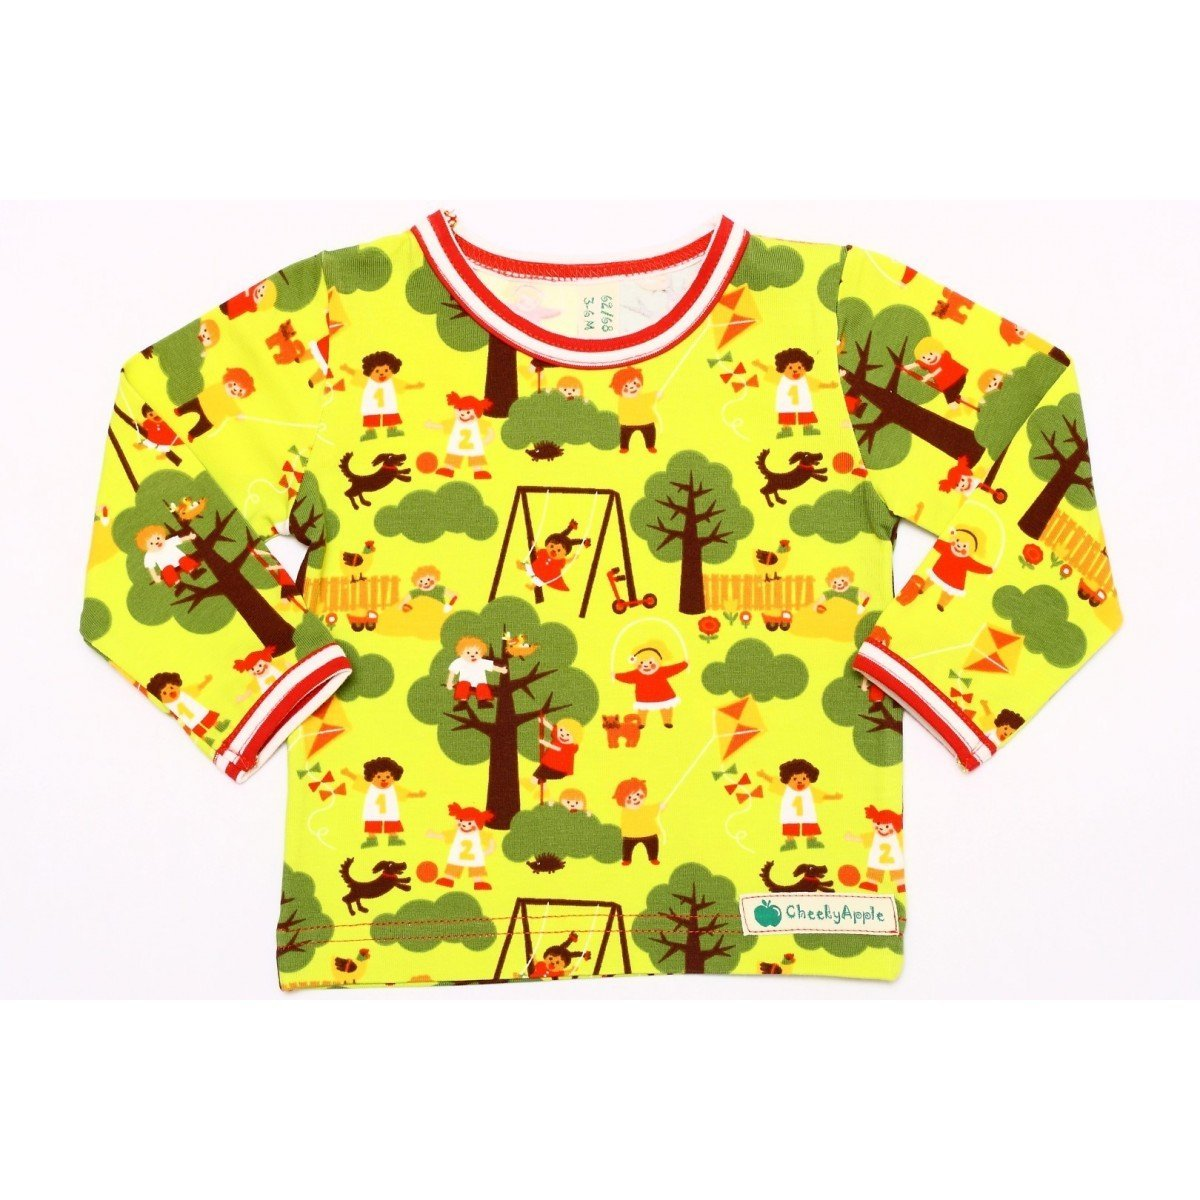 Langarmshirt Cheeky Apple - Langarm Shirt Playtime - bio und fair